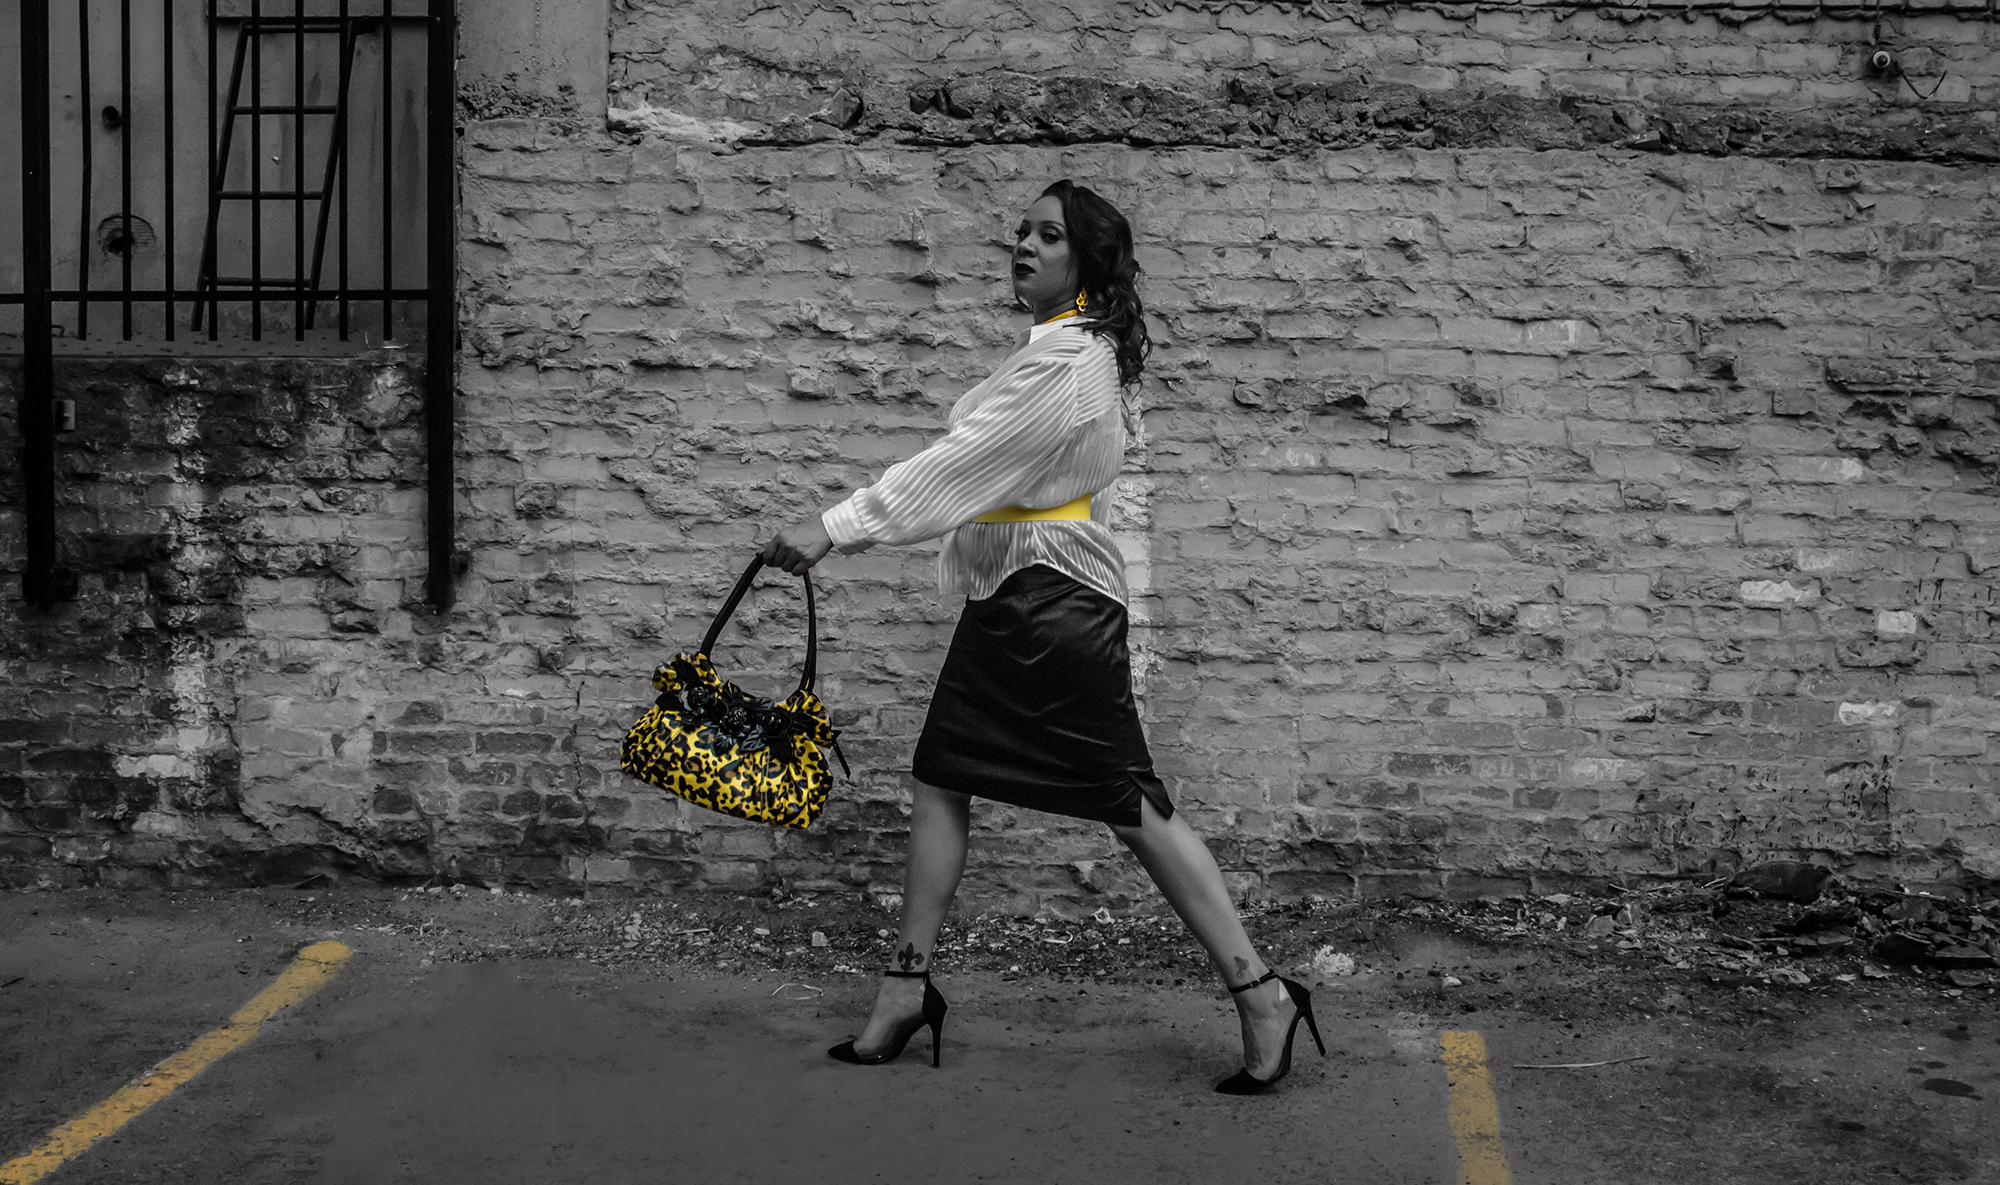 Yellow for all seasons. Accessorize, accessorize, accessorize.   Faux yellow and black patent leather animal print handbag   Stylish 100% polyester sheer blouse   Black cotton blend A-line skirt with kick split   Lemon yellow 100% leather belt